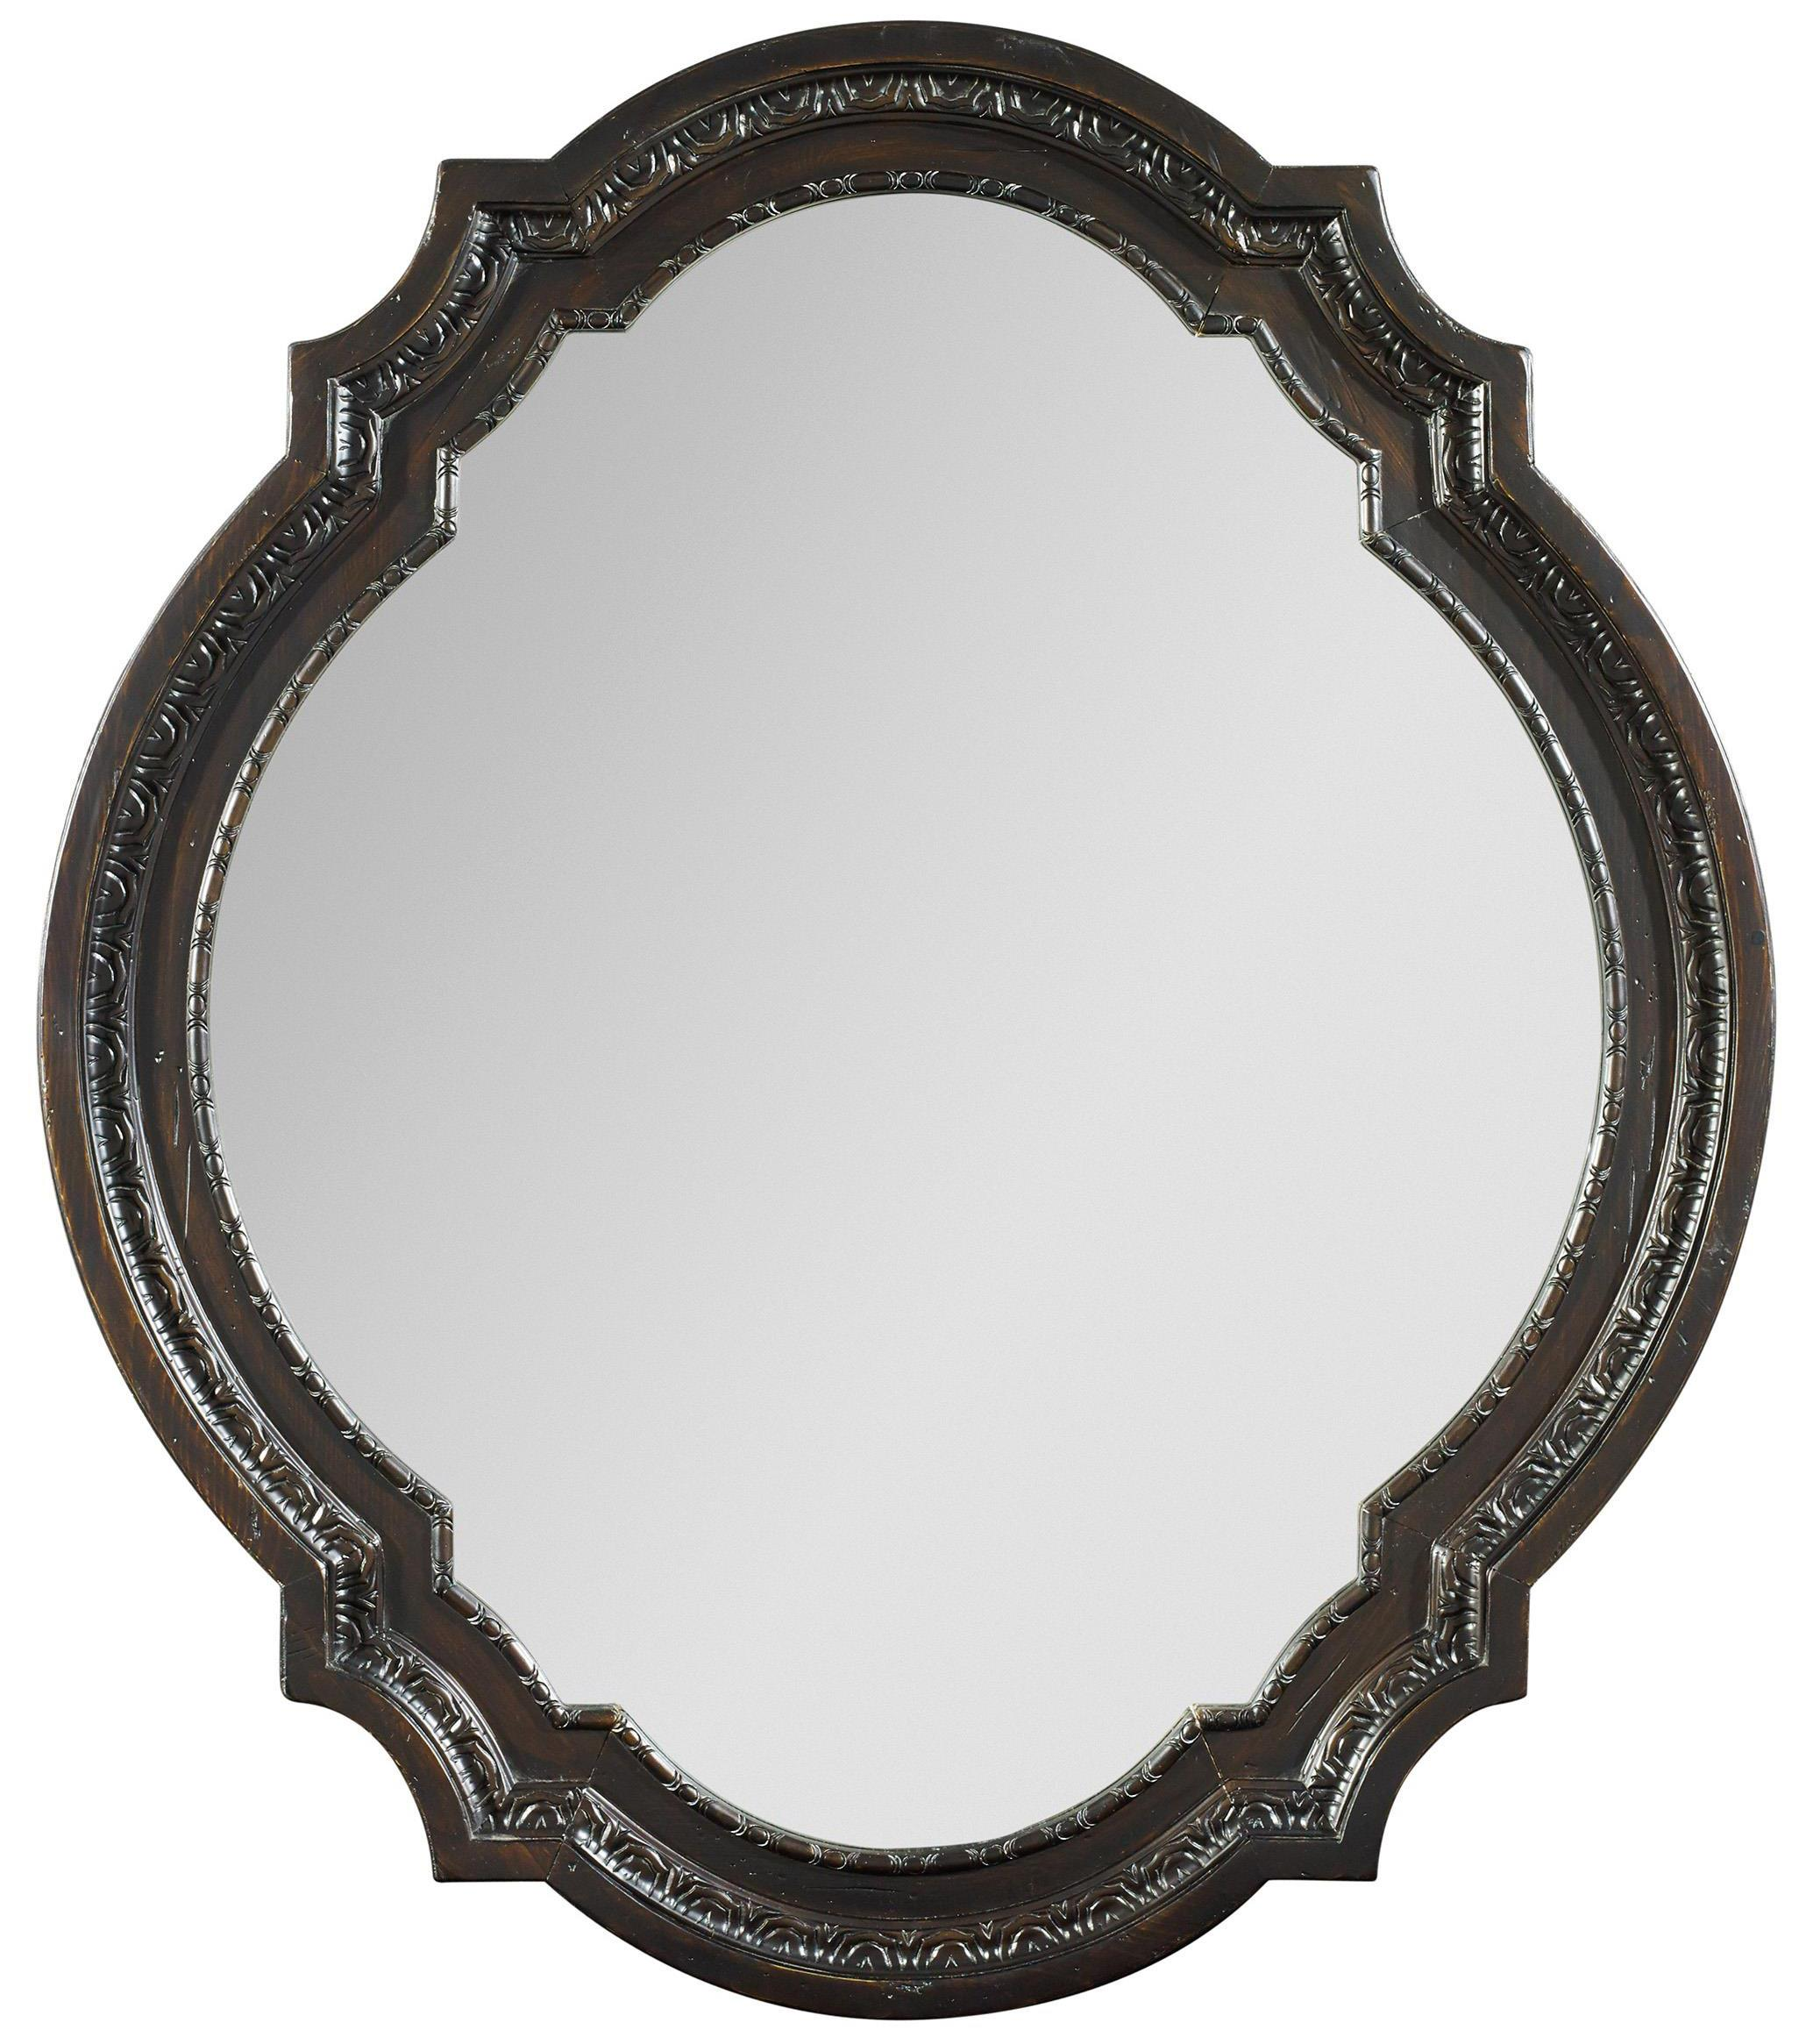 Hooker Furniture Treviso Accent Mirror - Item Number: 5374-90008